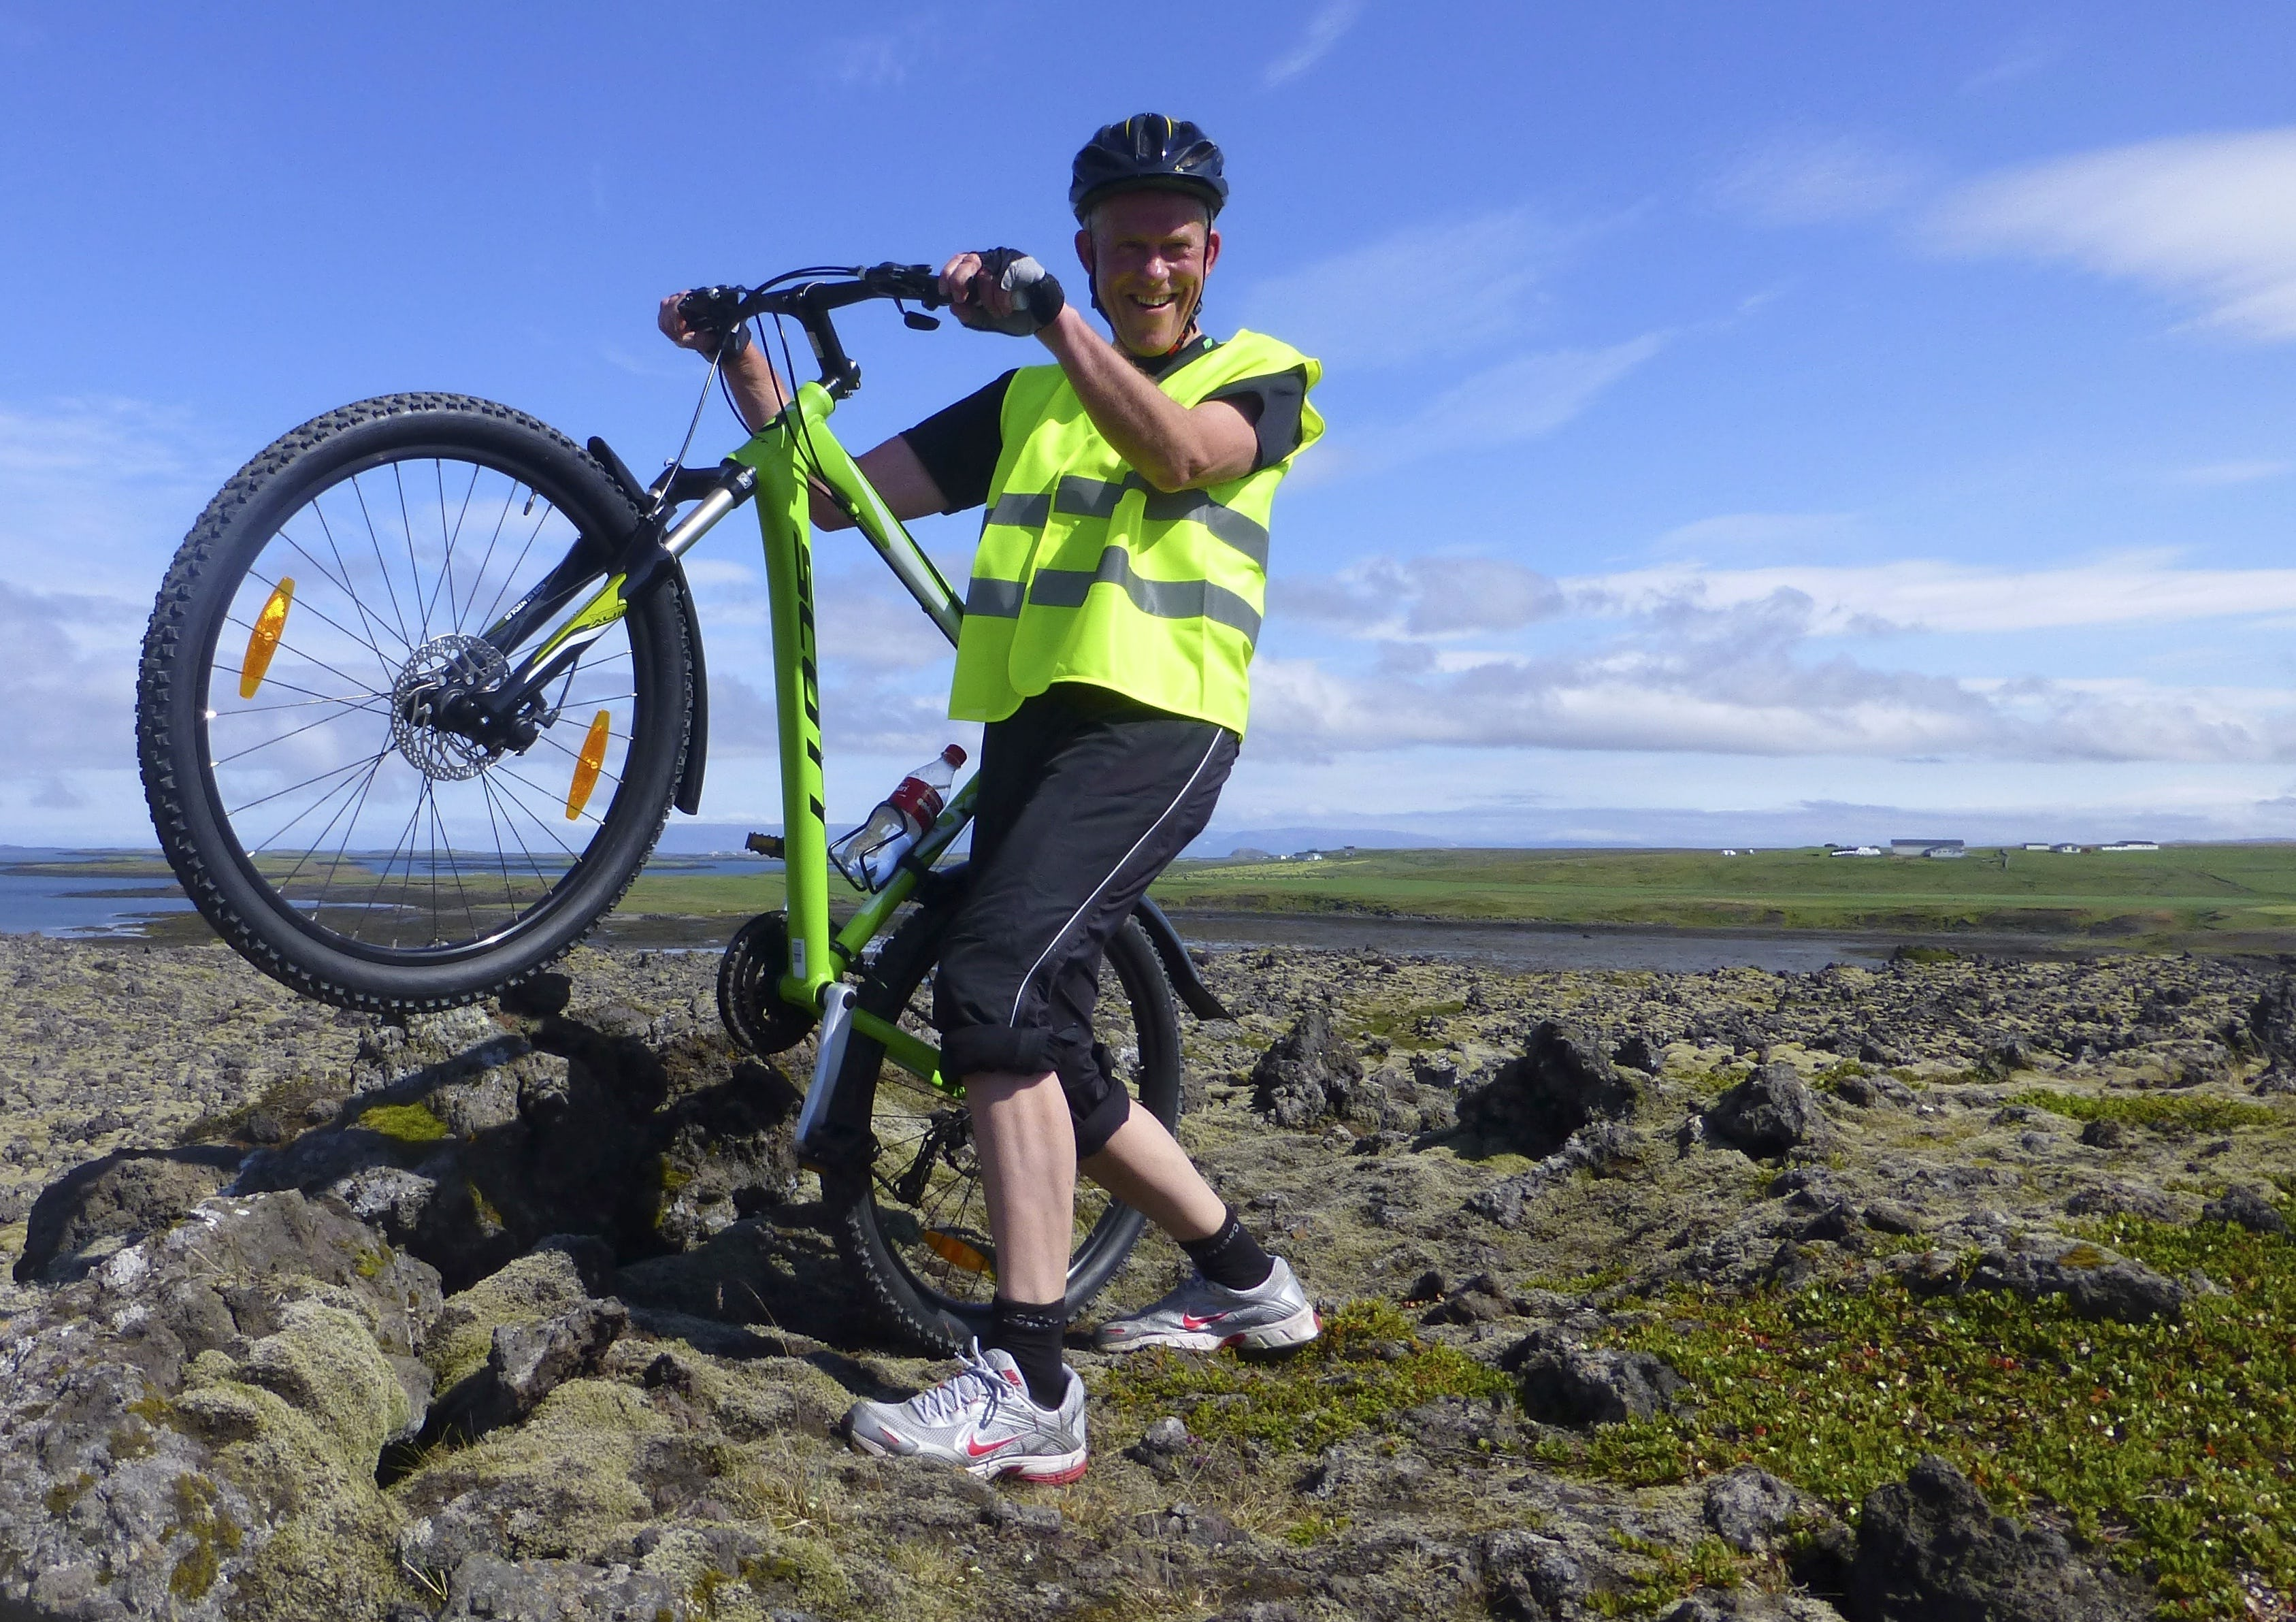 The marvellous coastal scenery of the Snæfellsnes Peninsula is particularly spectacular when combined with the thrill of a rural bike ride.